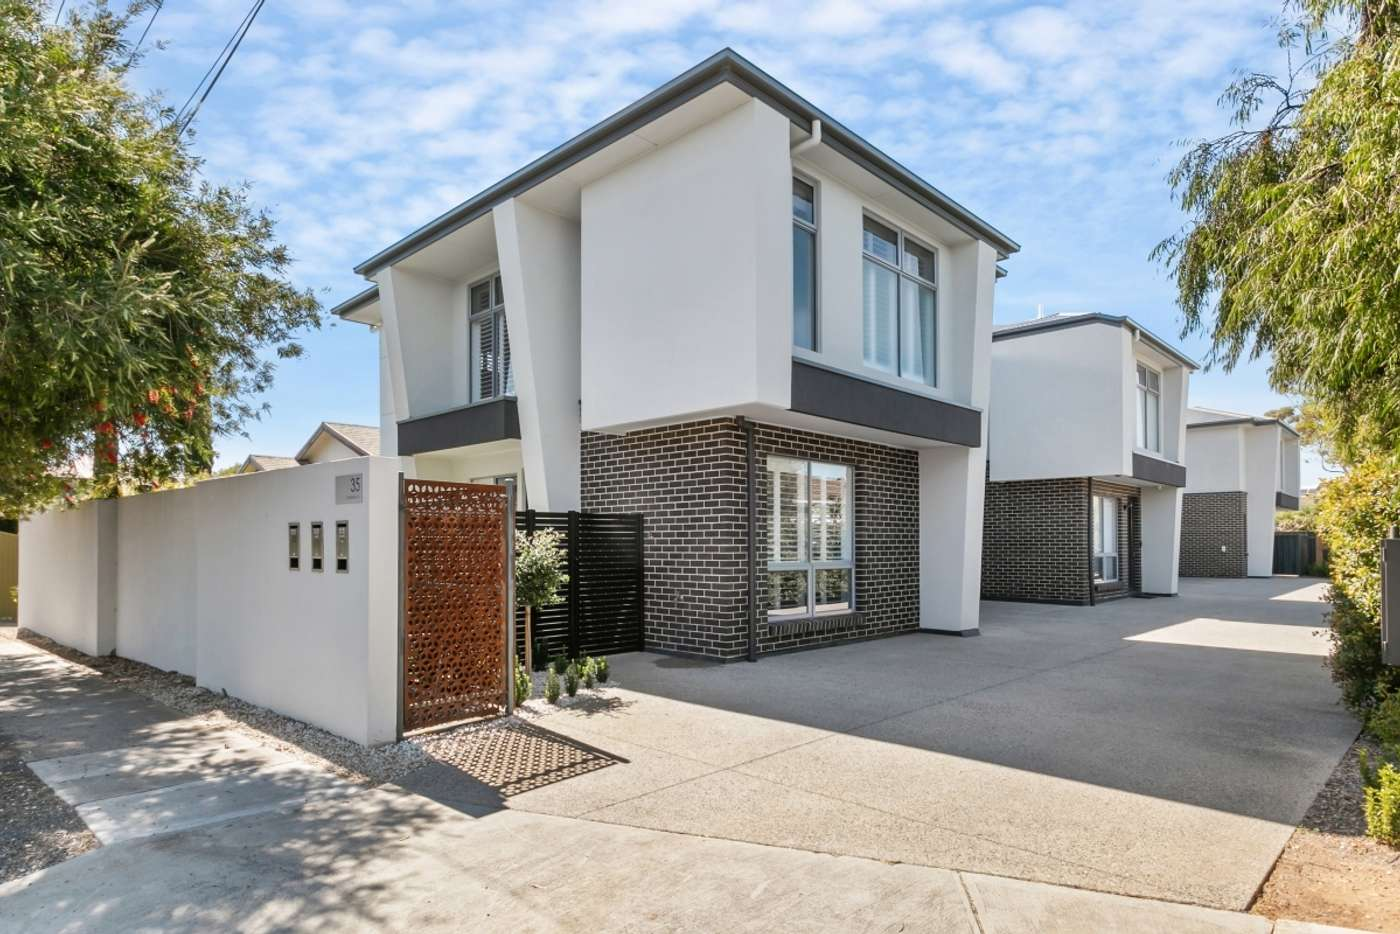 Main view of Homely house listing, 35 Commercial Road, Brighton SA 5048